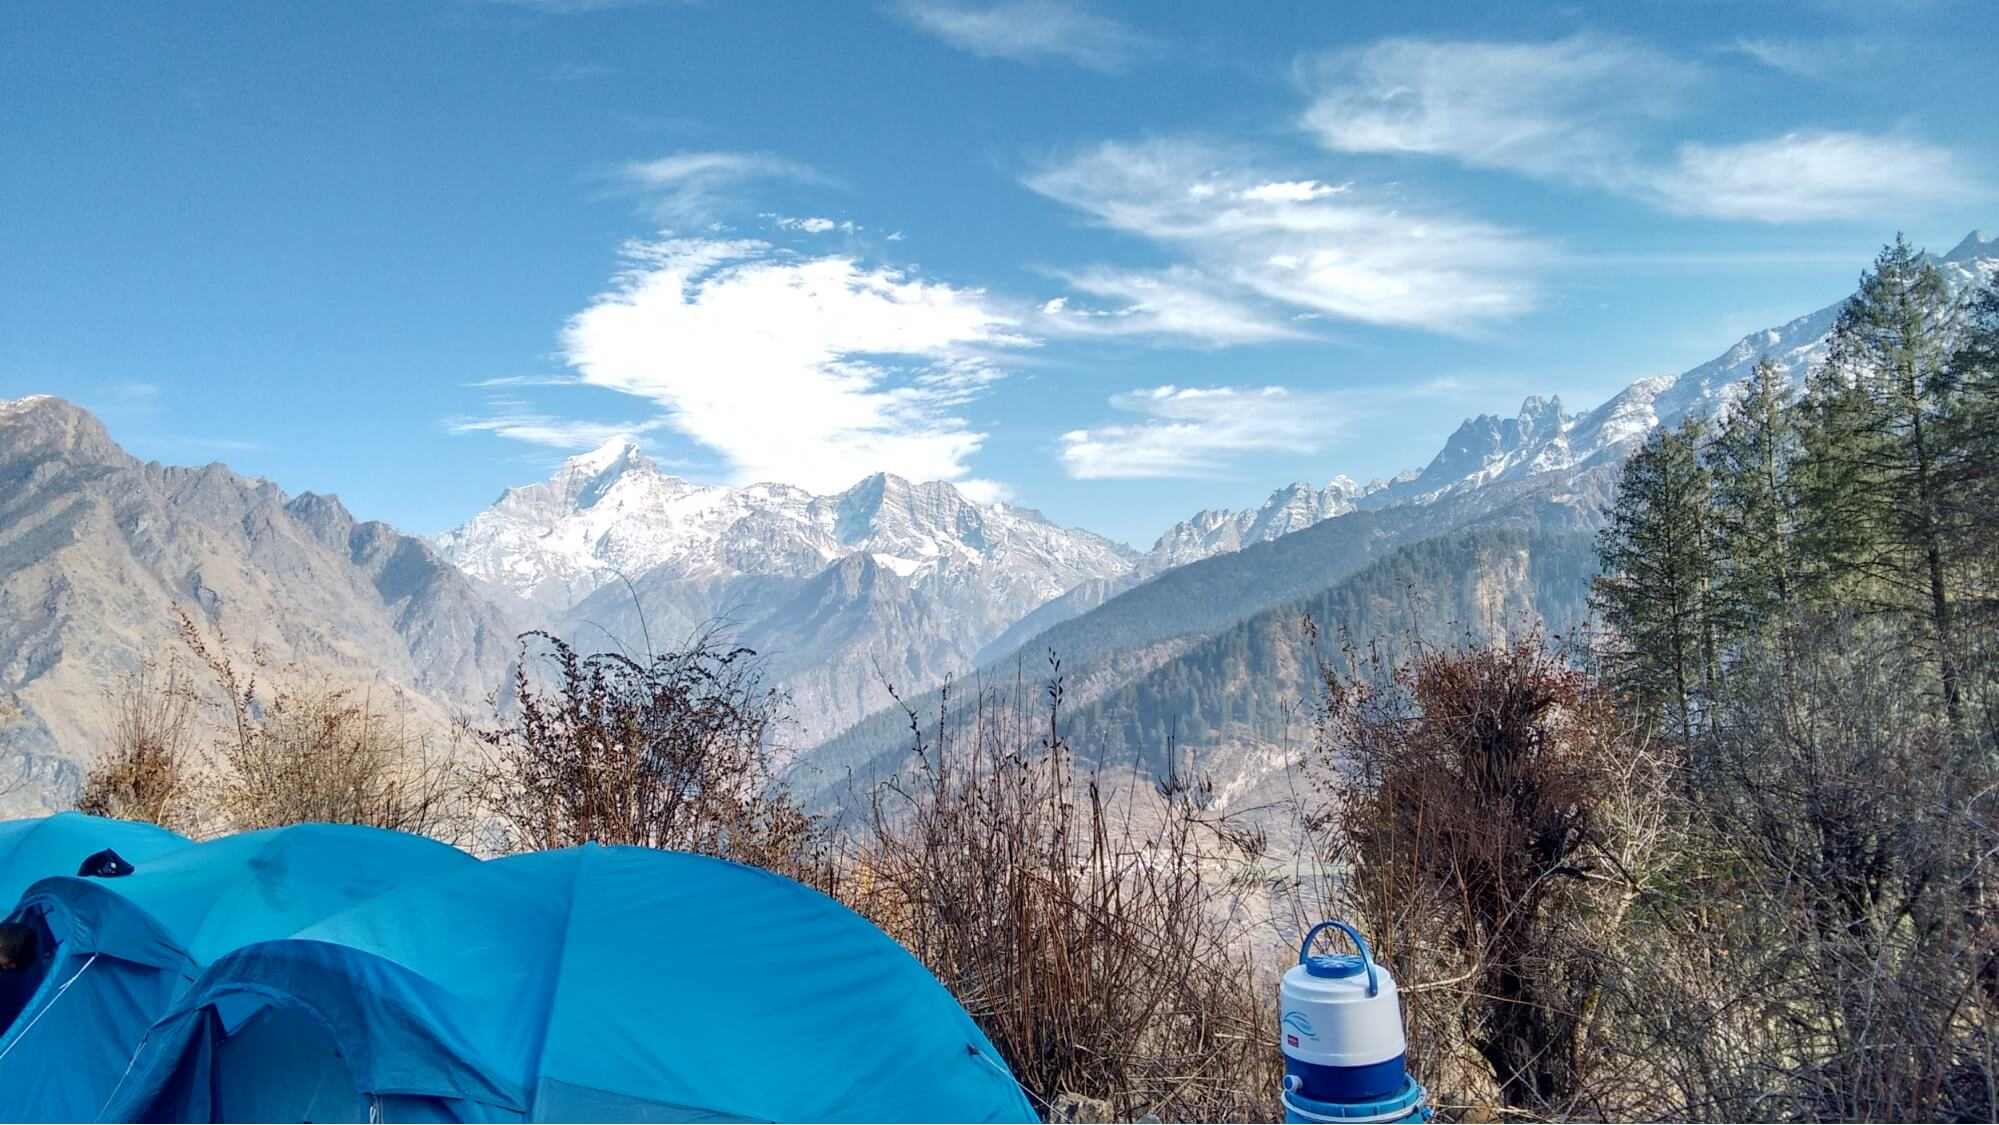 a blue tent pitched in the mountains